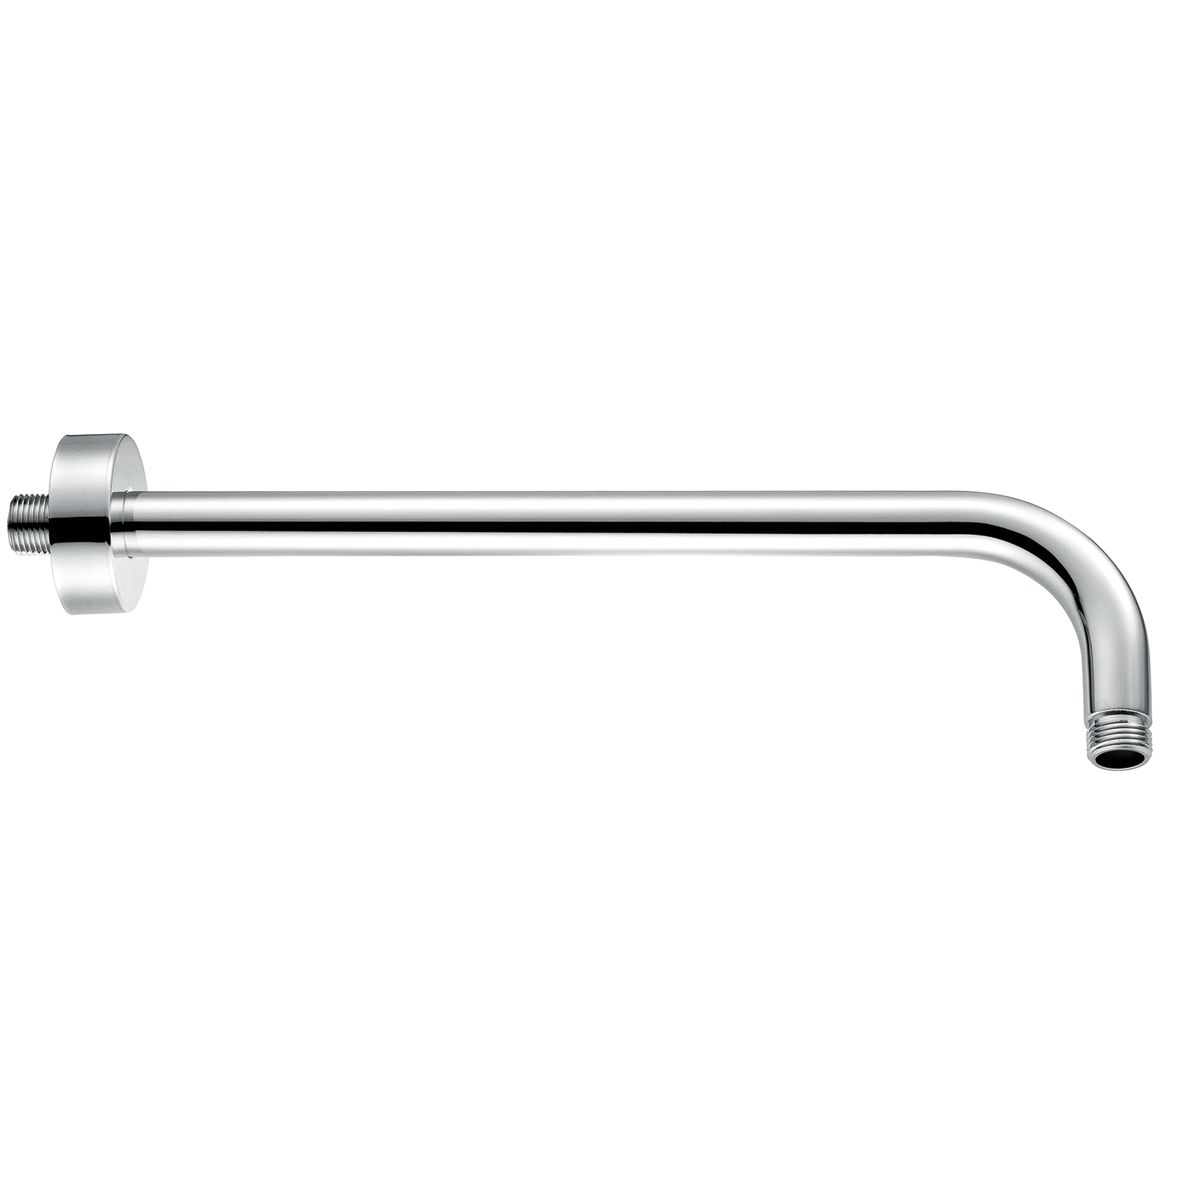 RAK Chrome Round Wall Mounted Shower Arm 300mm